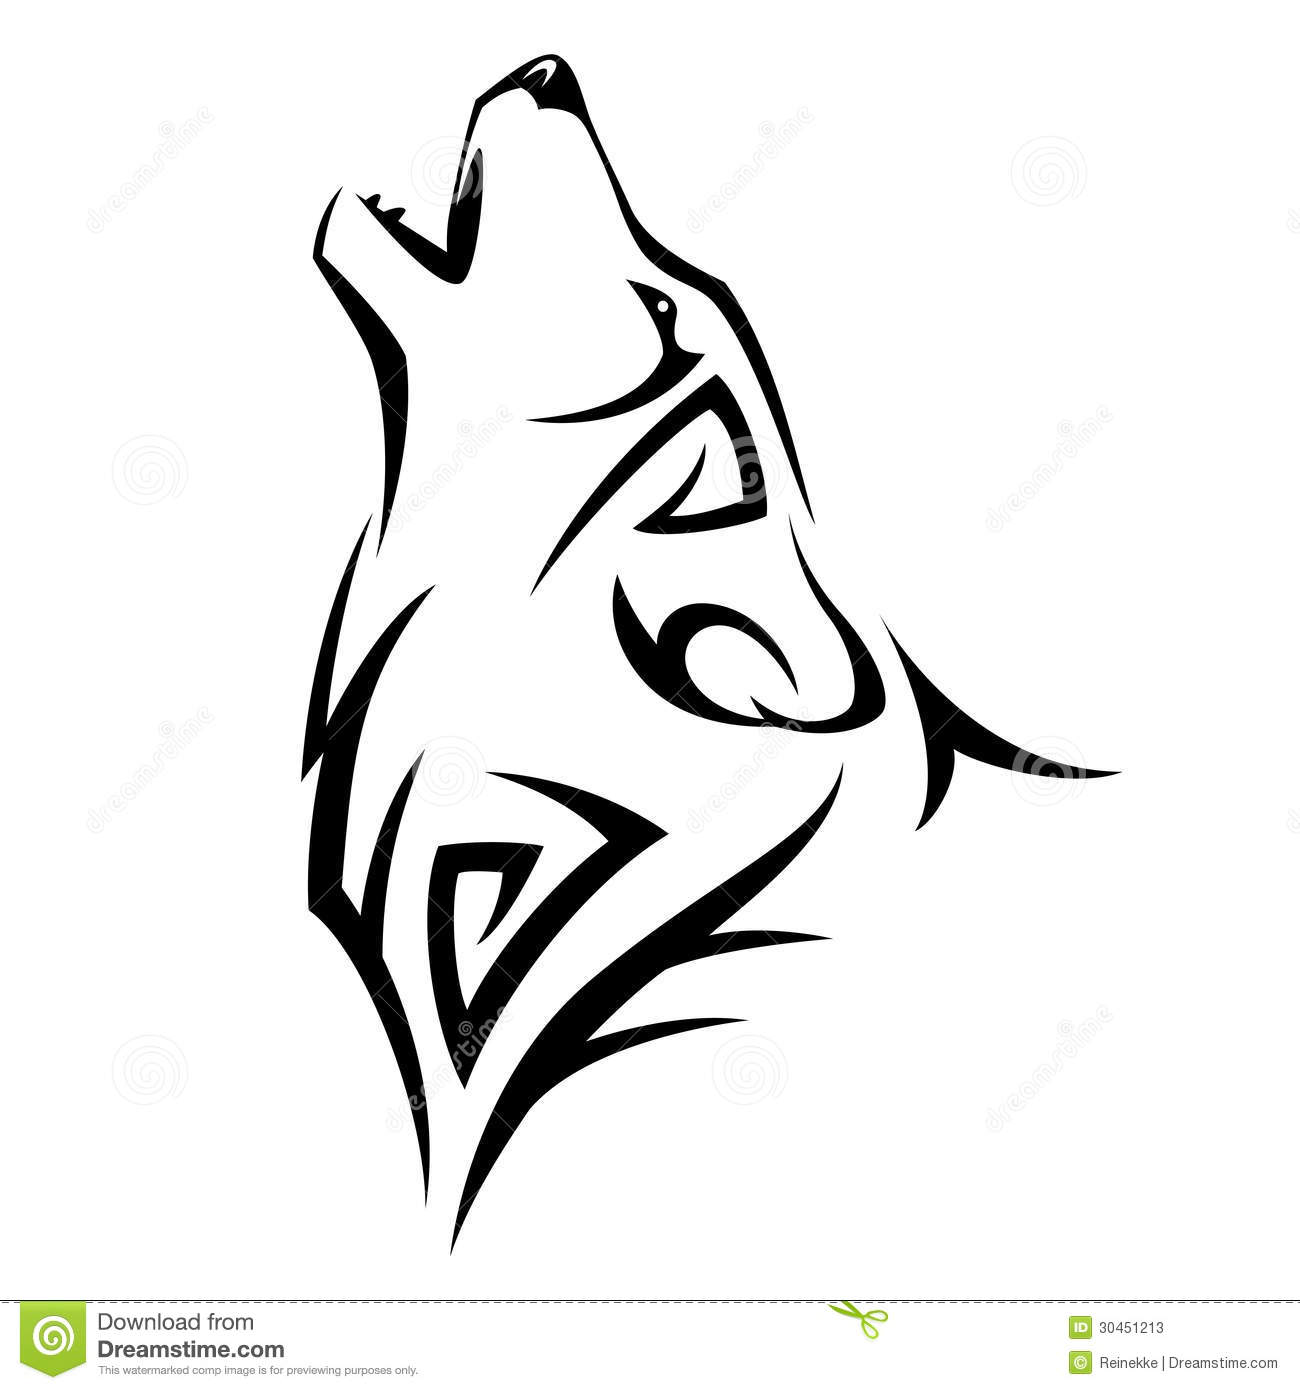 tribal tattoo prices Tribal tattoo wolf Howl illustration. Design